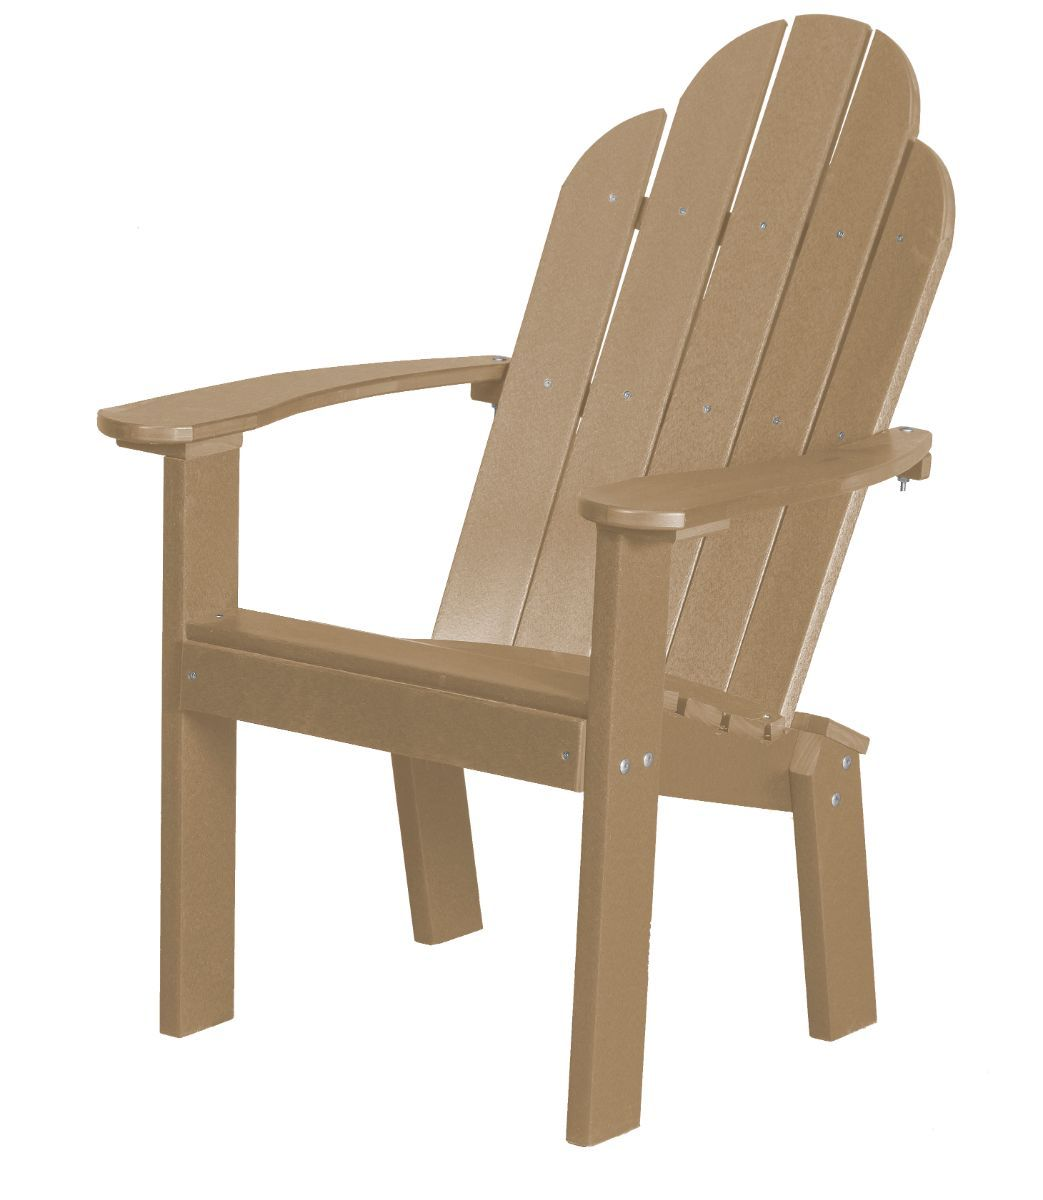 Weathered Wood Odessa Outdoor Dining Chair